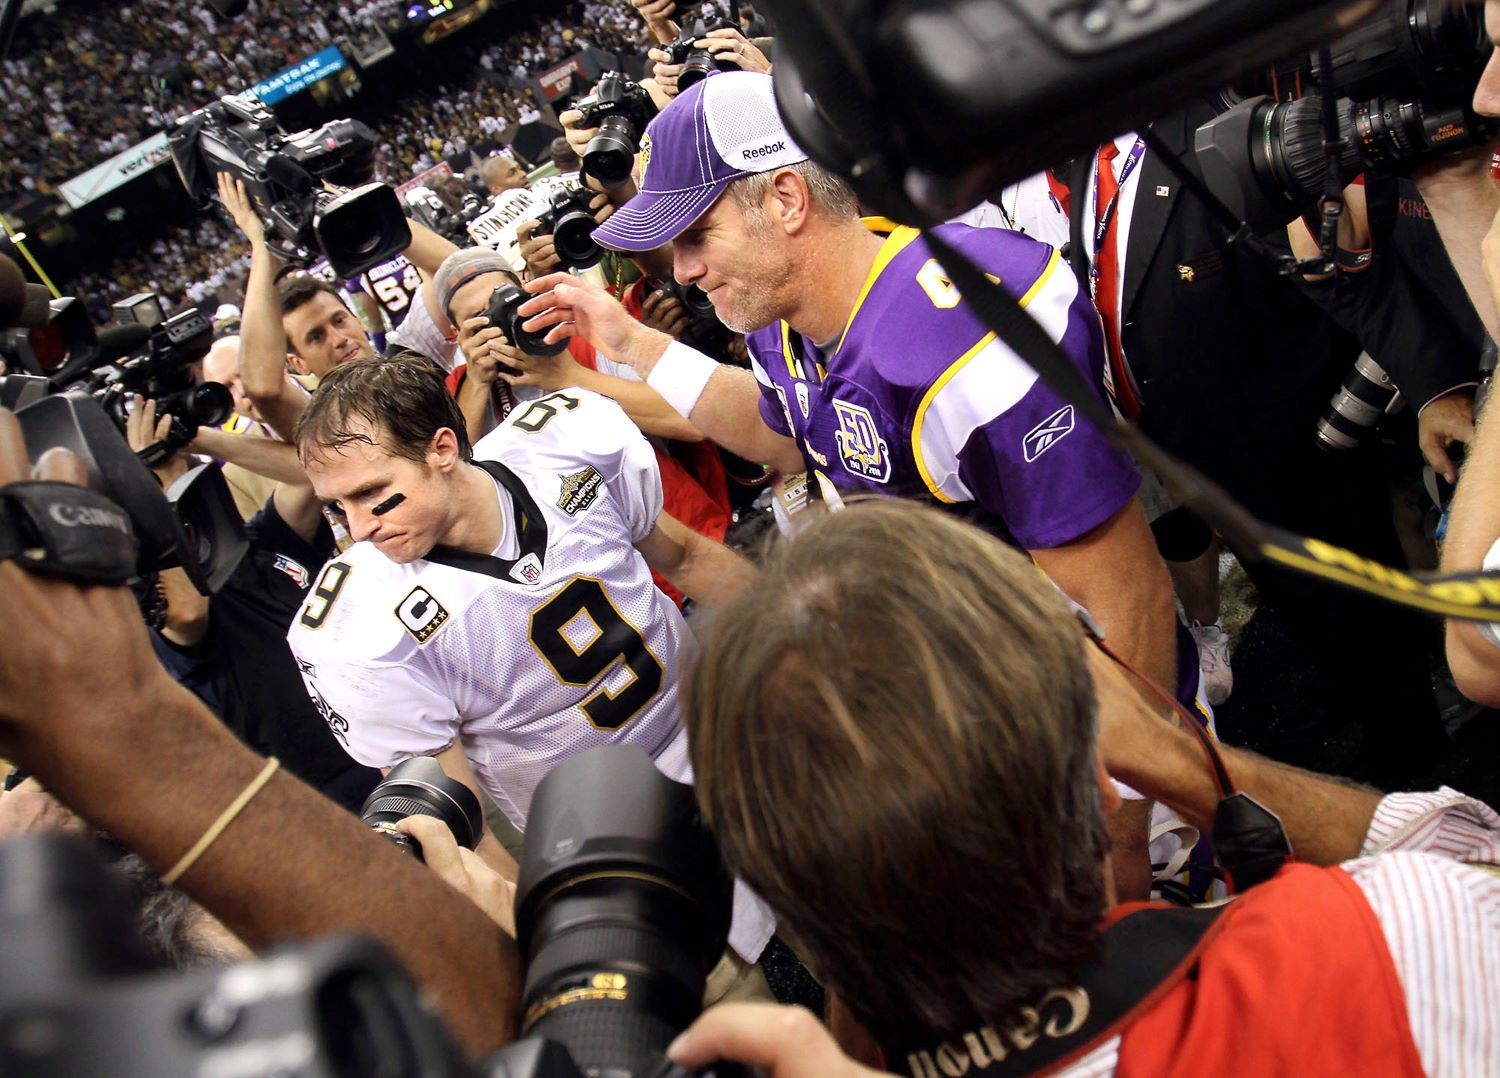 Brett Favre Has a Crystal Clear Stance on Drew Brees and His Controversial Anthem Comments